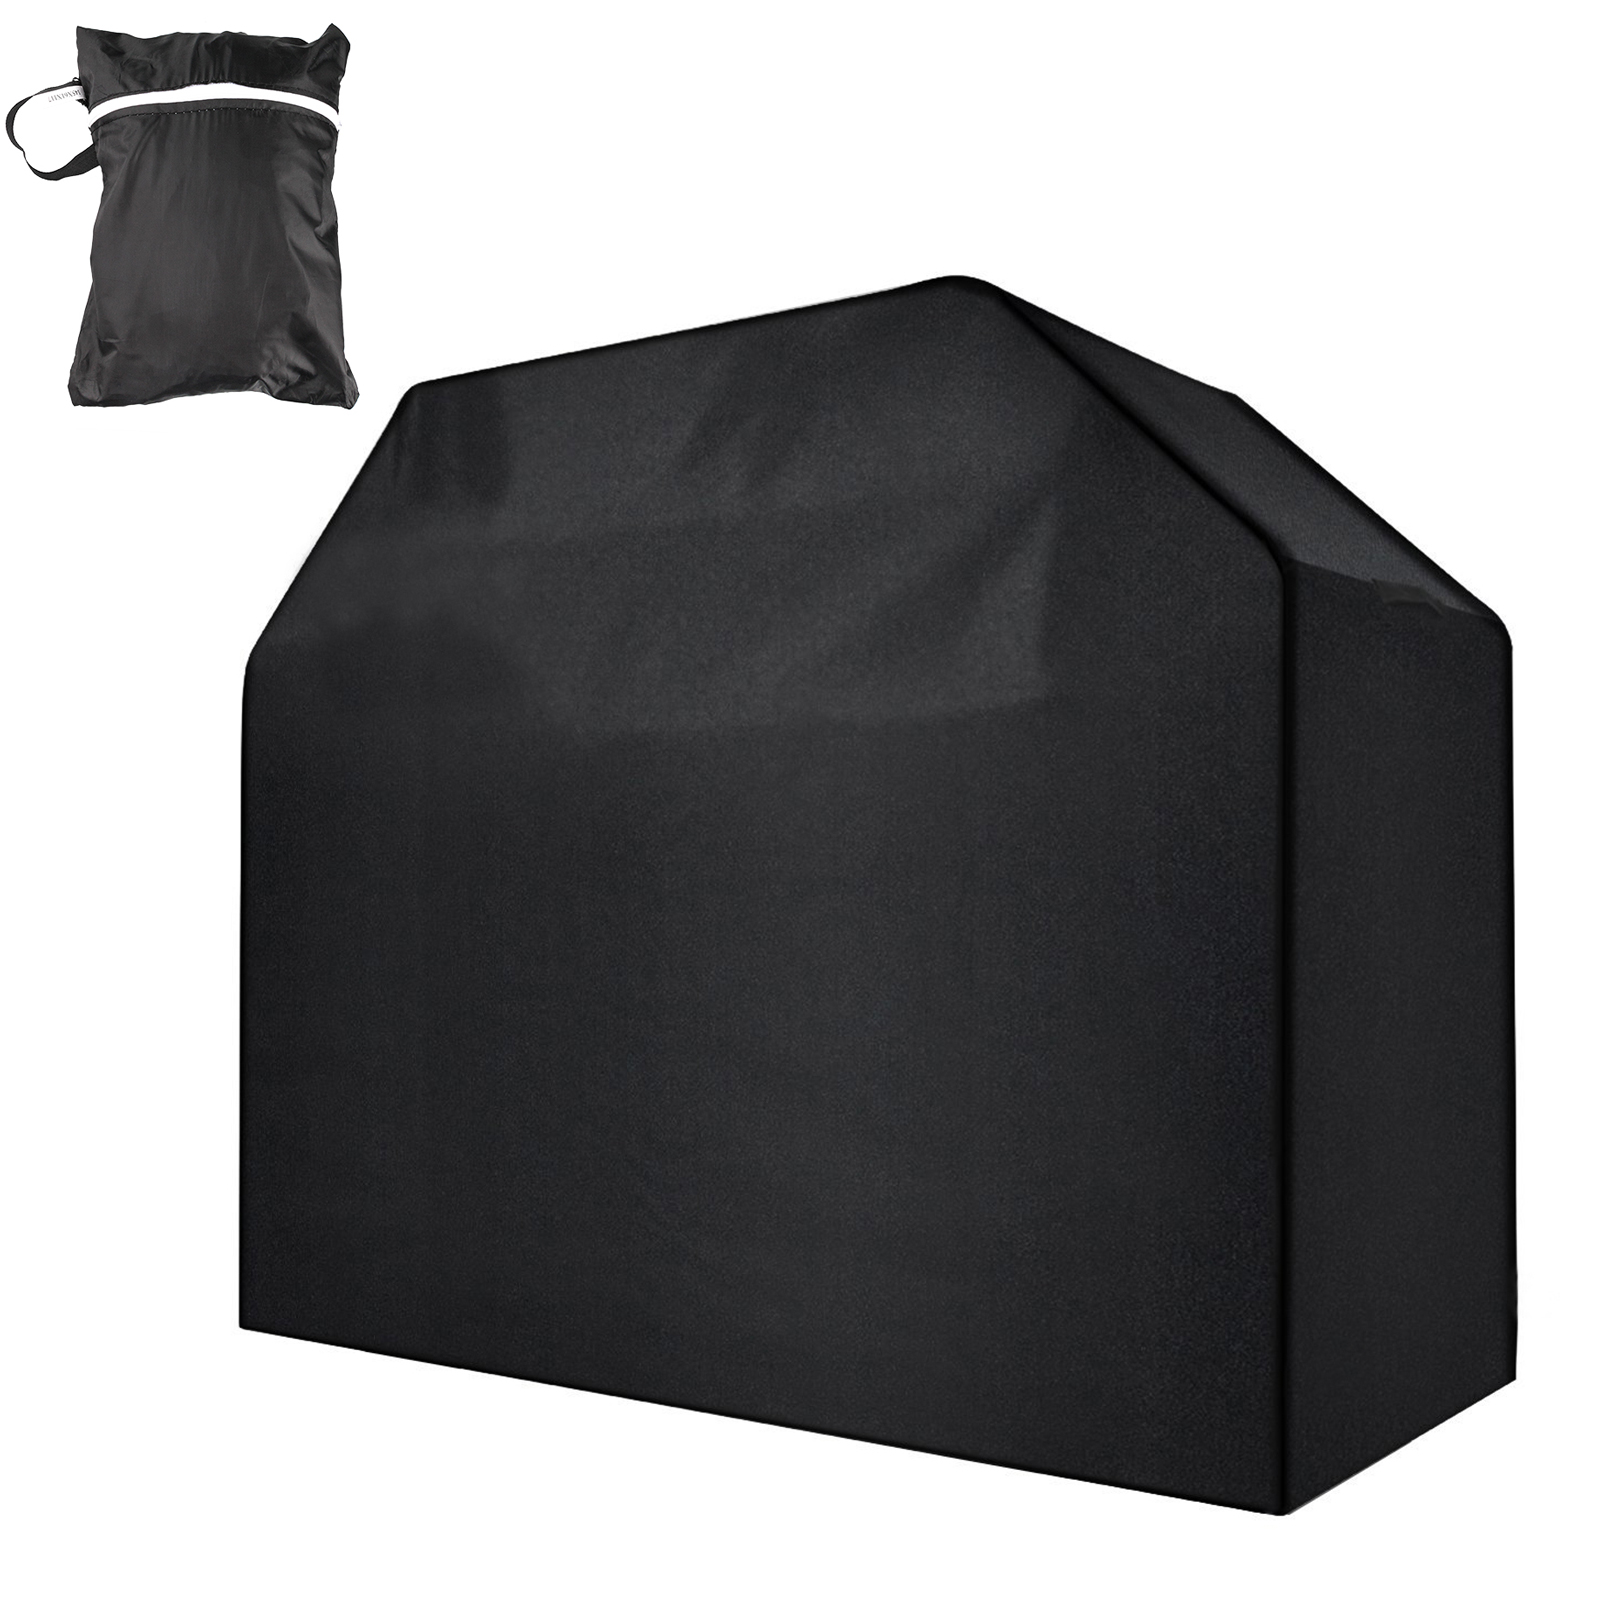 """Universal Gas Grill Cover, 57"""" 58"""" Heavy Duty Waterproof Barbecue BBQ Cover Durable Nylon Fabric Resistant Material, Fits Grills of Weber Char-Broil Nexgrill Brinkmann and More"""